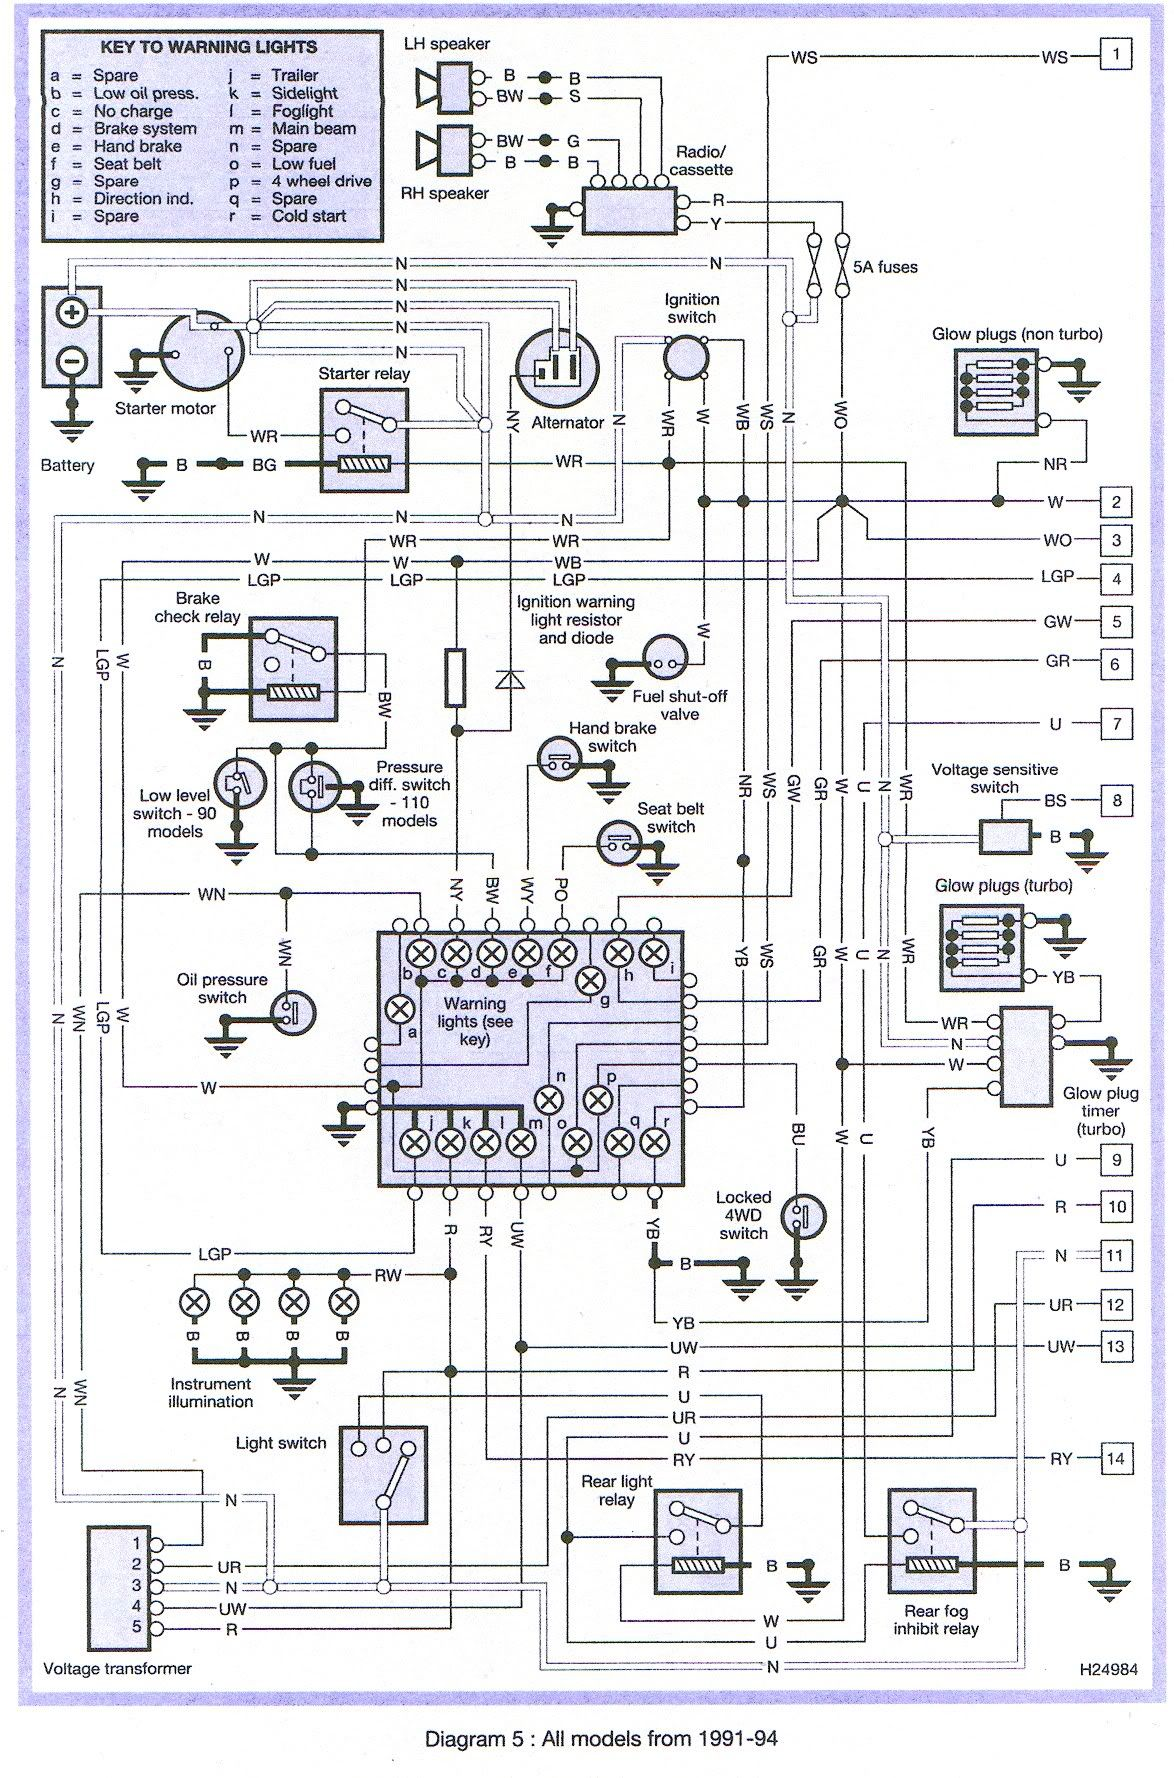 Defender 200 Tdi Wiring Diagram - House Wiring Diagram Symbols •